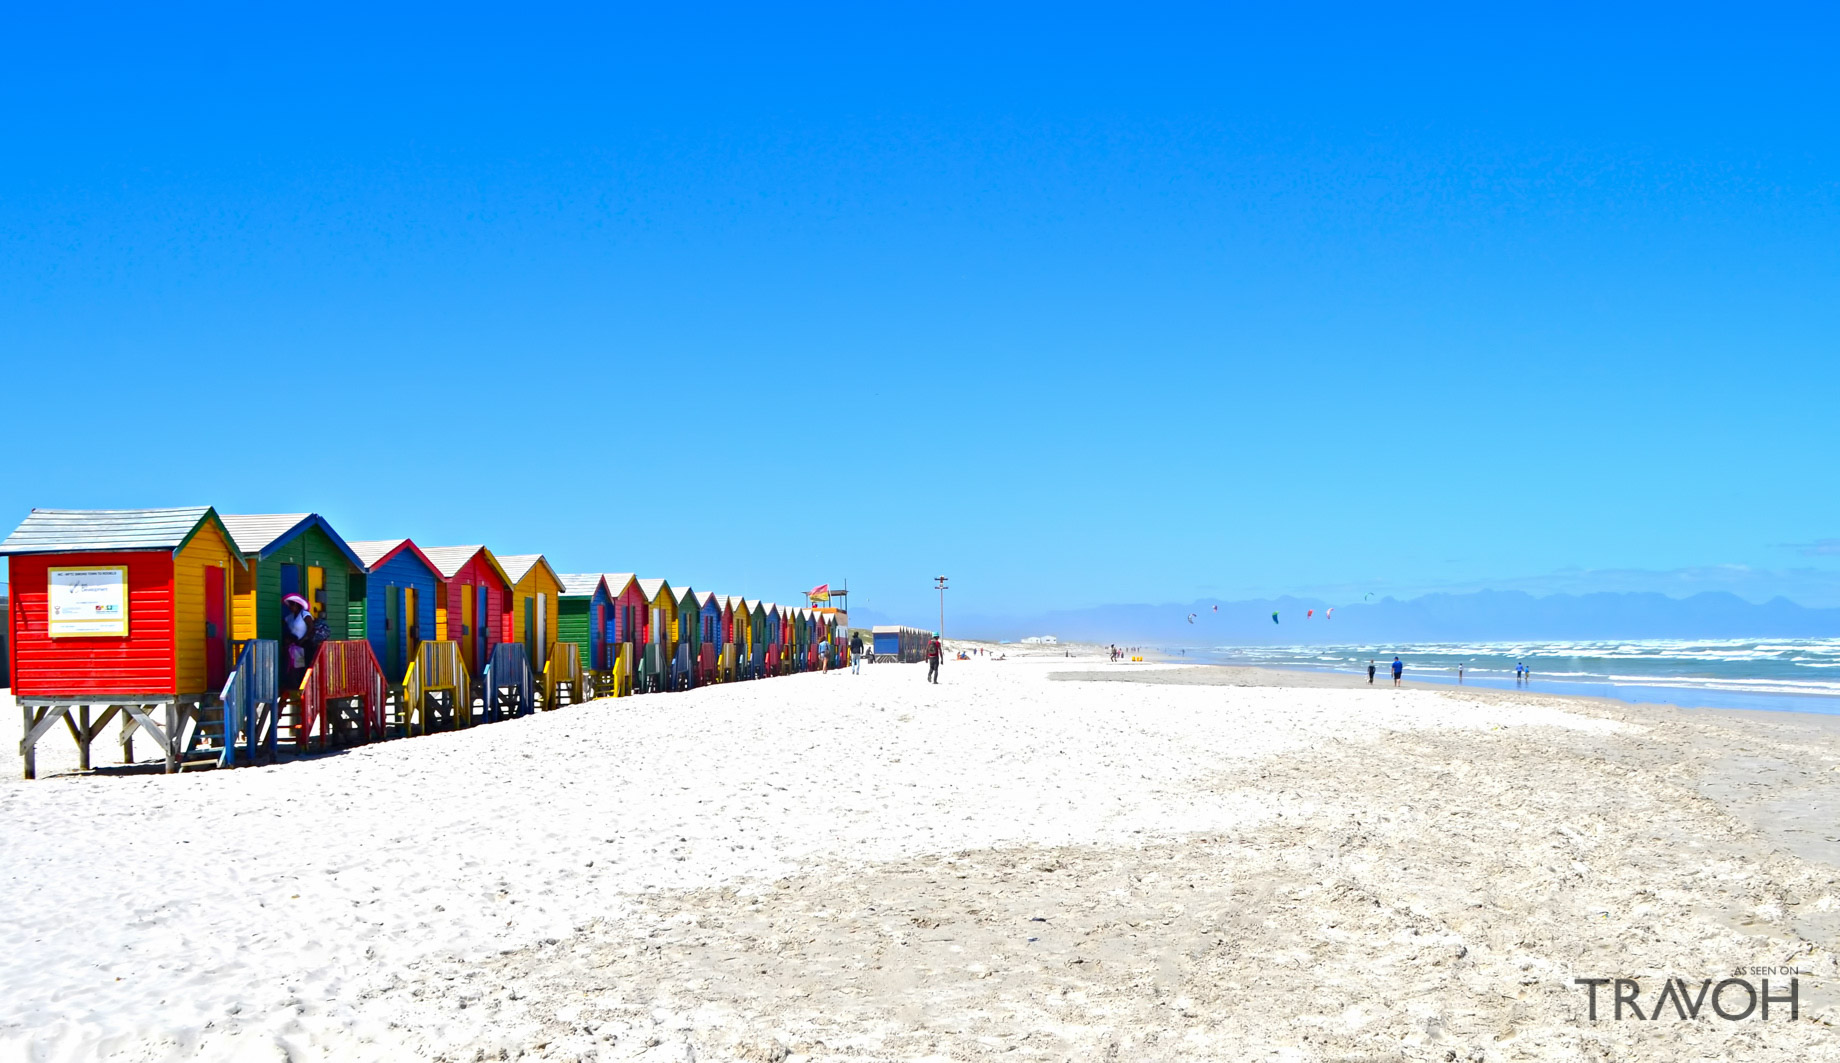 Muizenberg Beach - Exploring 10 of the Top Beaches in Cape Town, South Africa